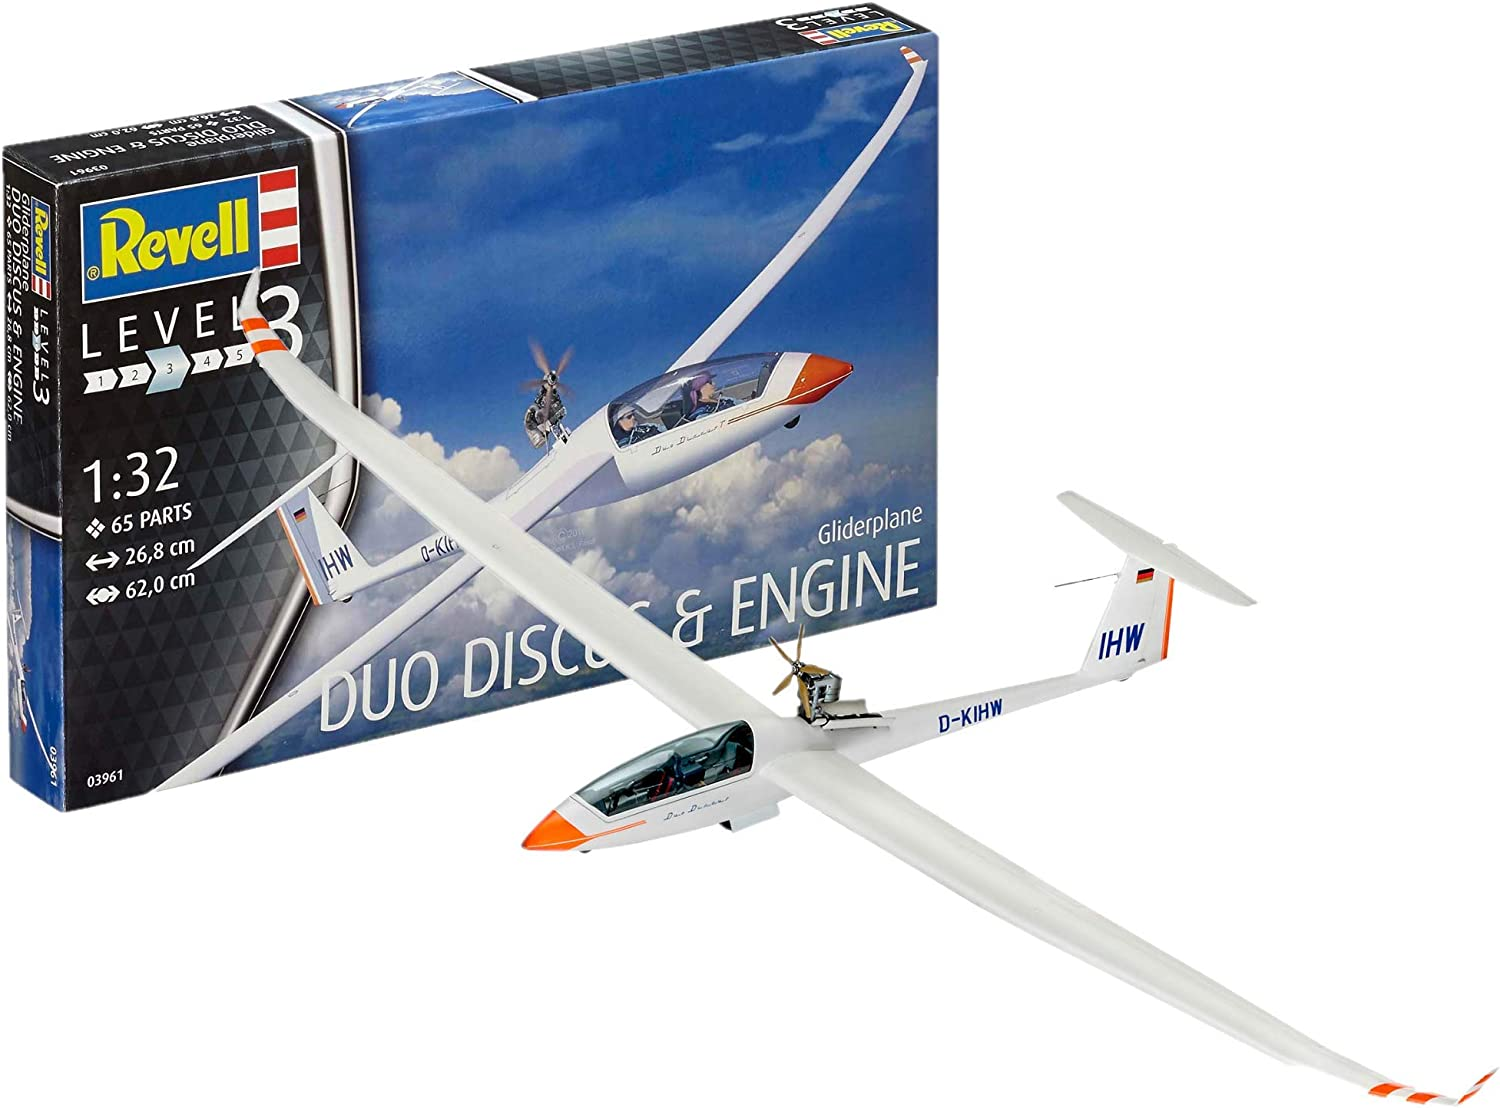 Revell 03961 Gliderplane Duo Discus and Engine Model Kit Revell/_03961